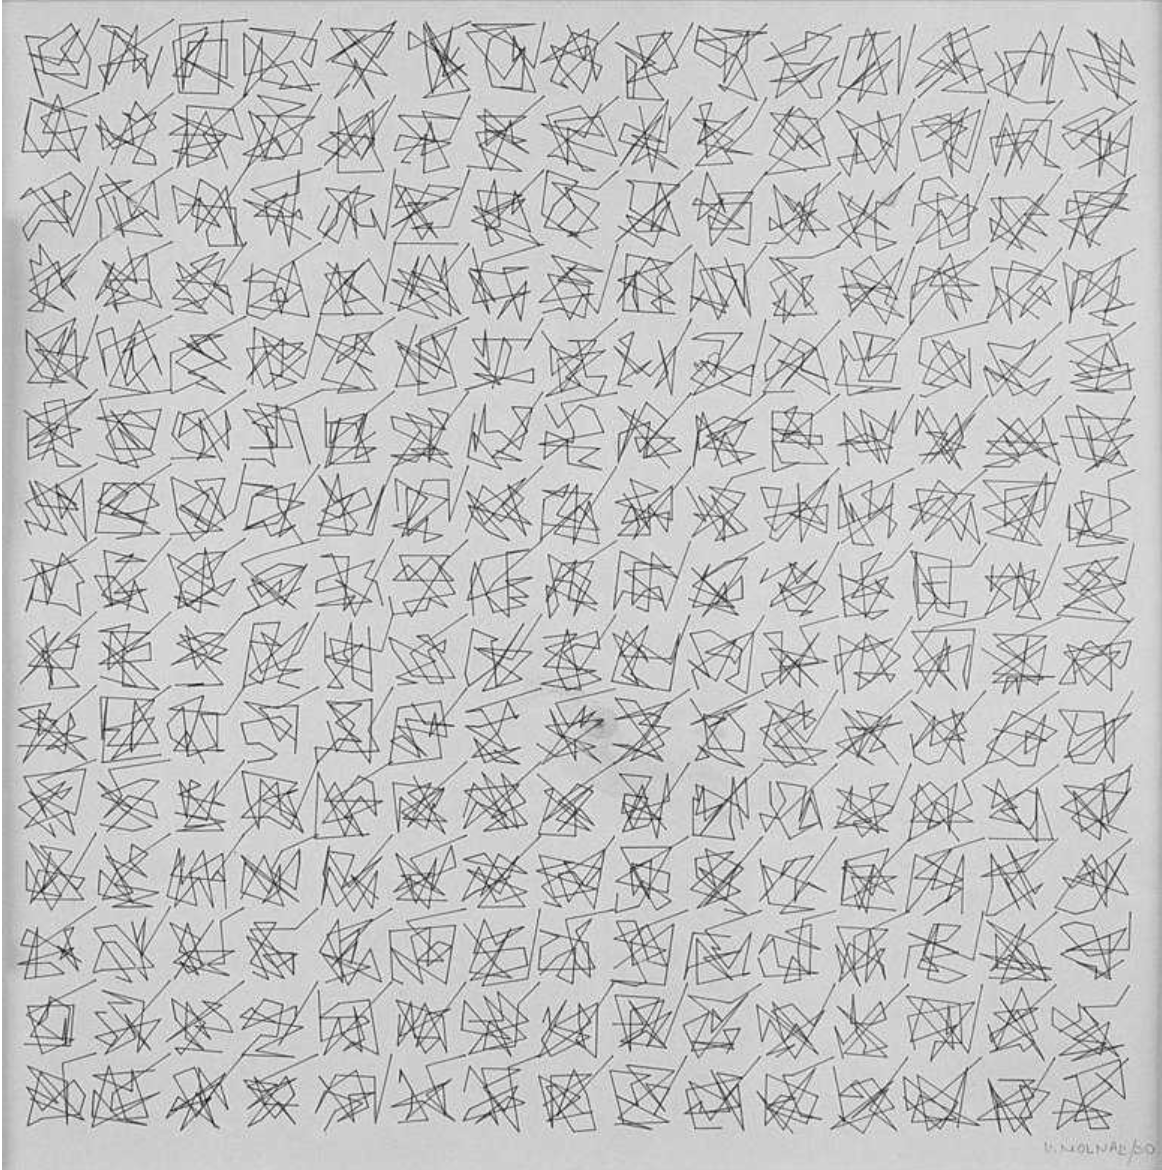 225 variations aléatoires, direction chaos, plotter drawing, open series, 1990, +/- 30 x 30 cm